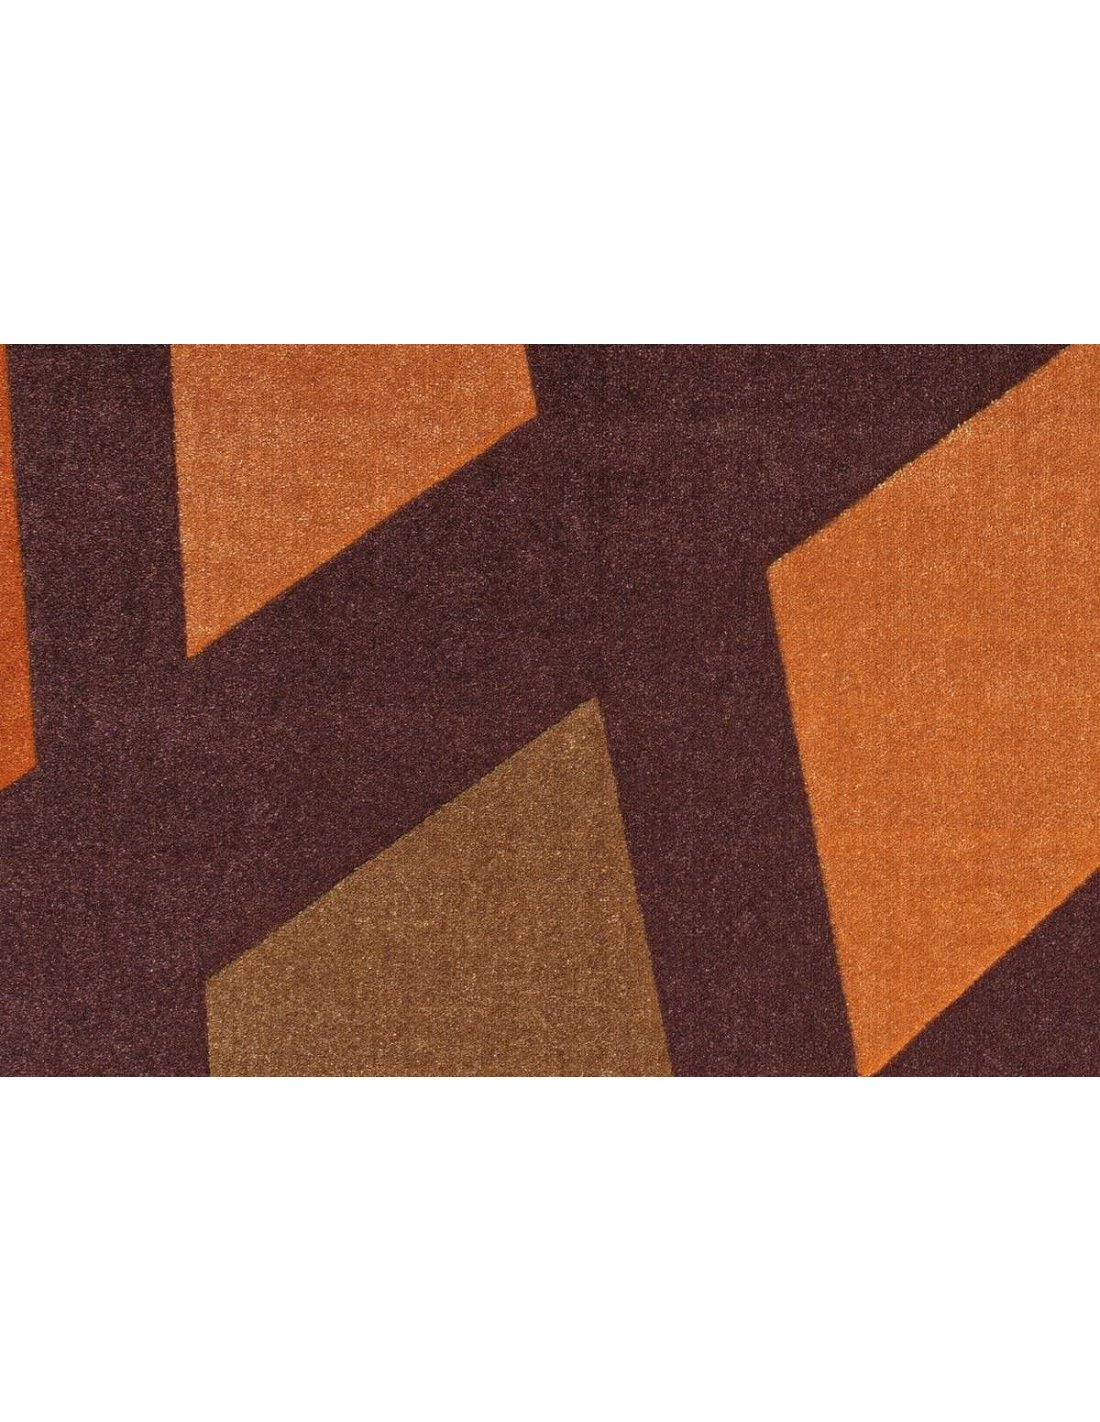 Tapis STYLE DE 32 Marron Orange | Arte Espina | Marron